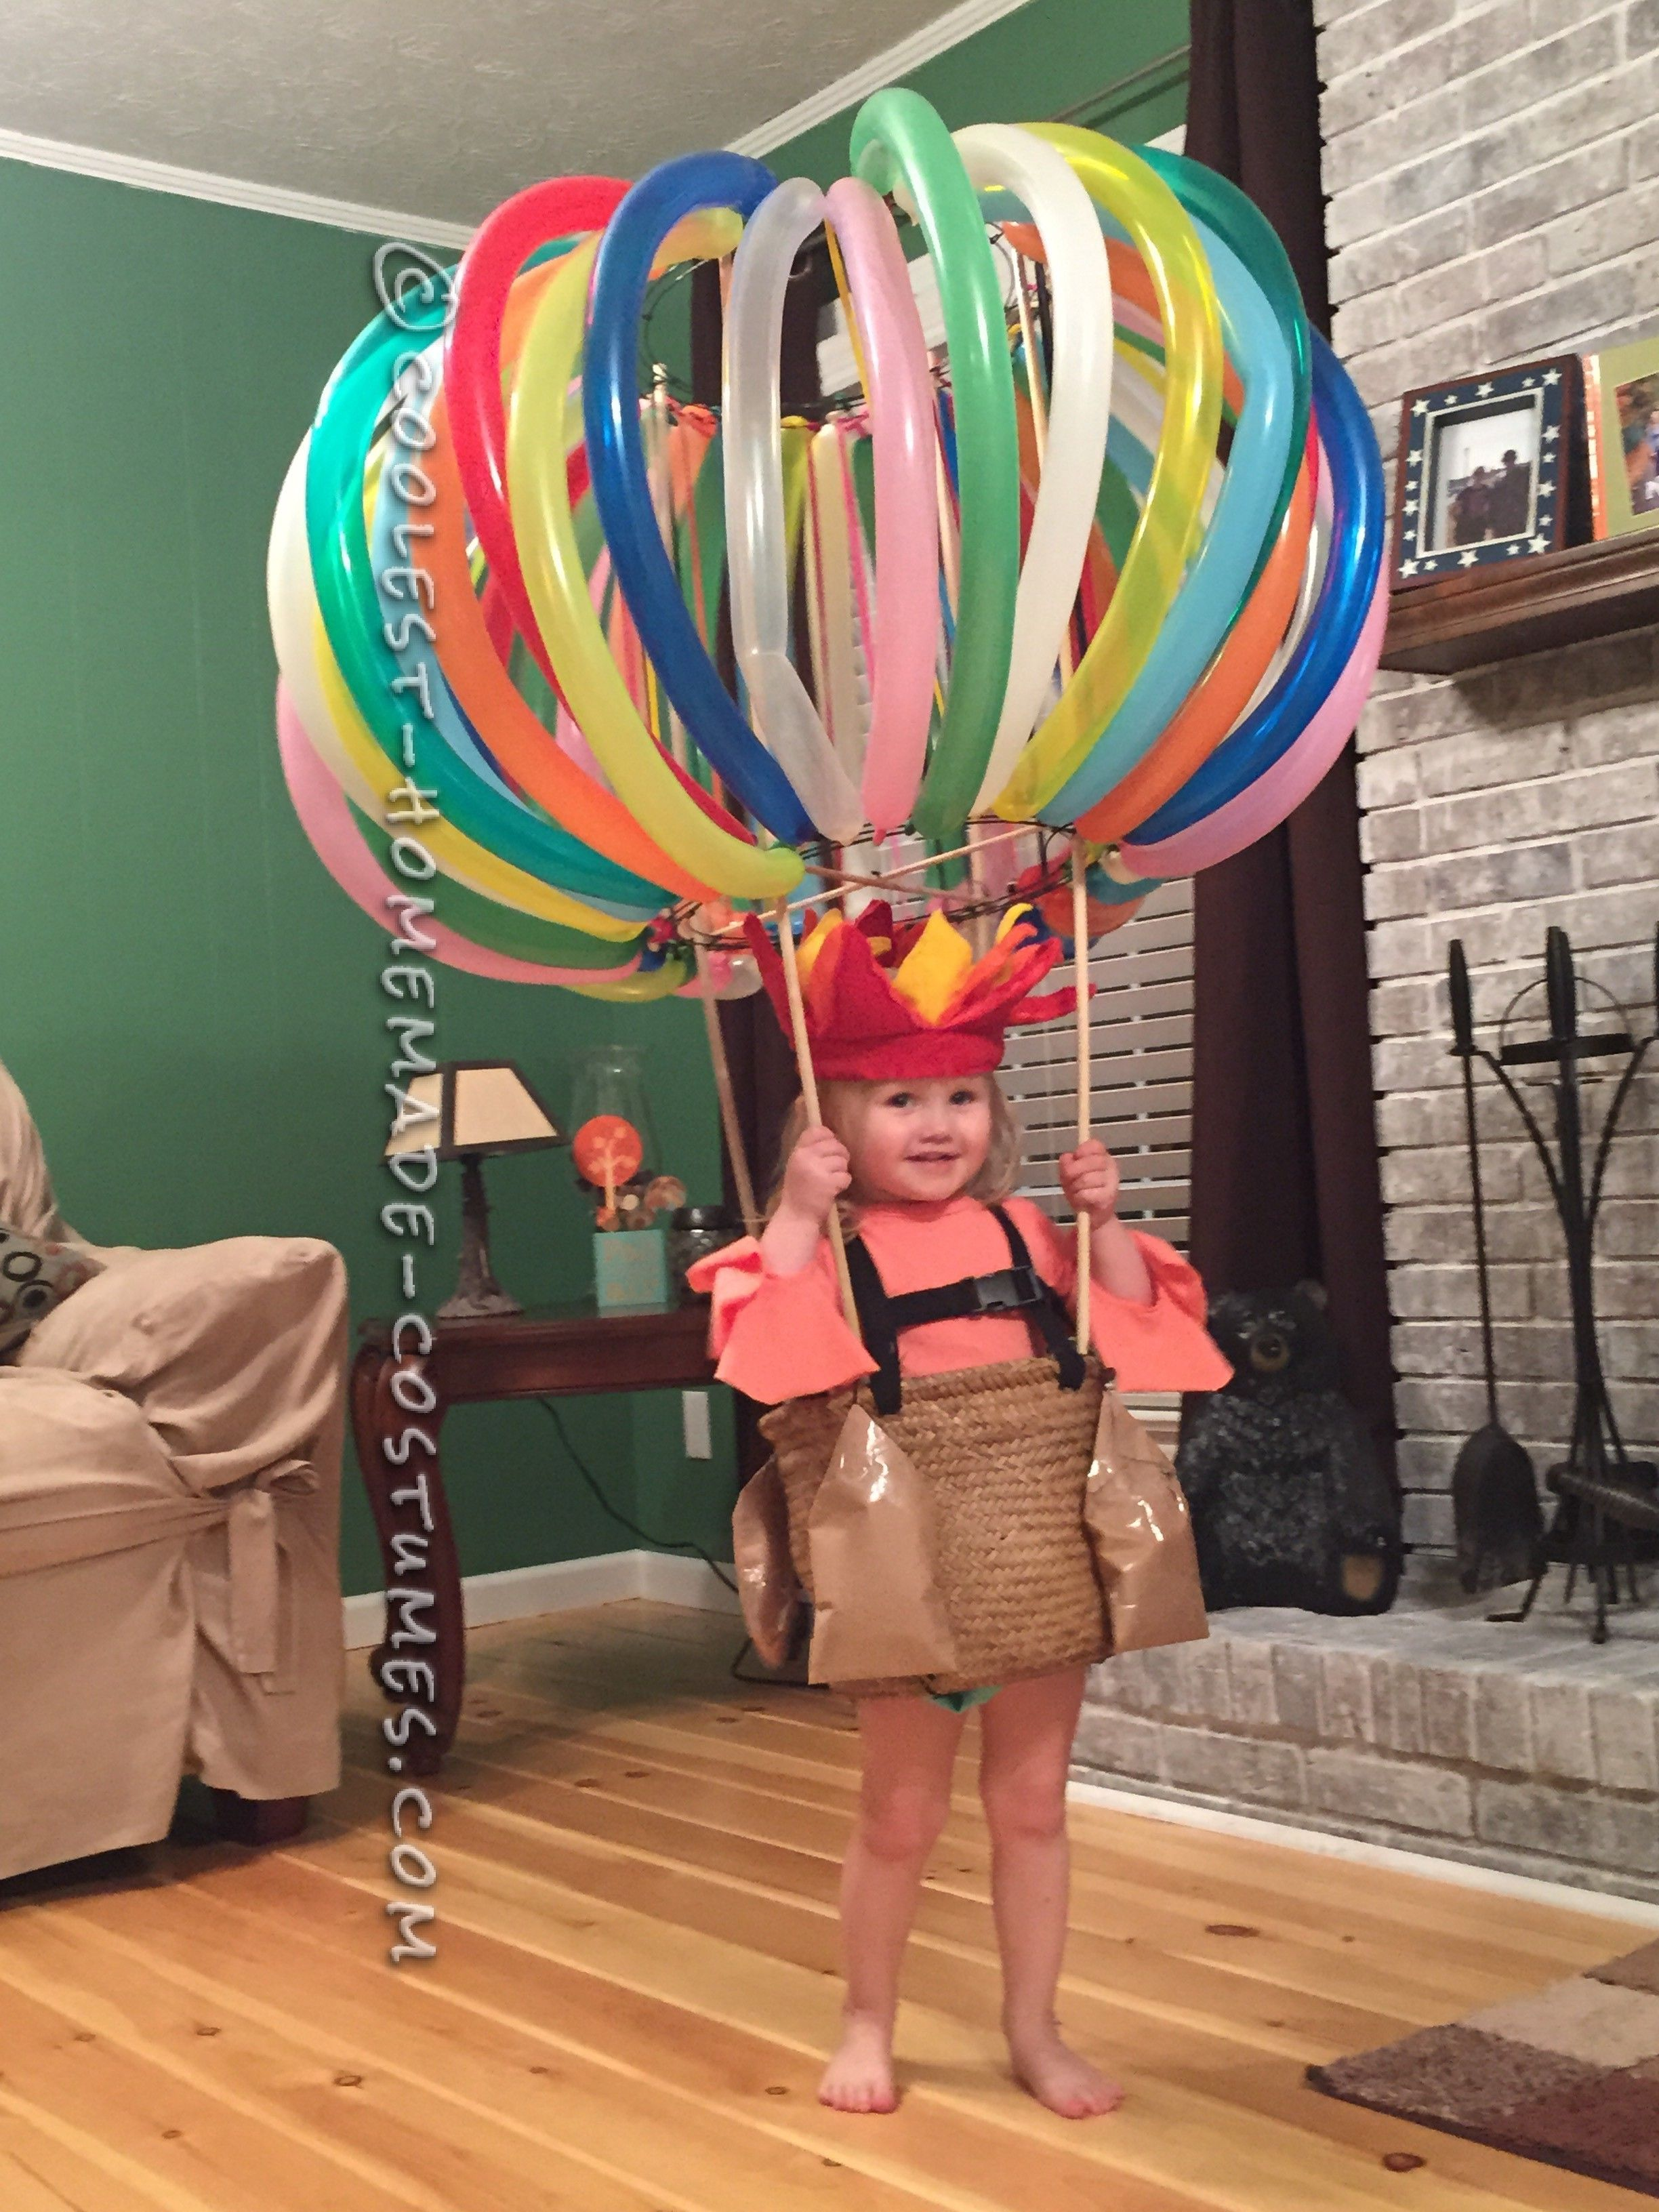 Cool Hor Air Balloon Costume for a Toddler... Coolest Halloween Costume Contest  sc 1 st  Pinterest & Cool Hot Air Balloon Costume for a Toddler | Pinterest | Halloween ...